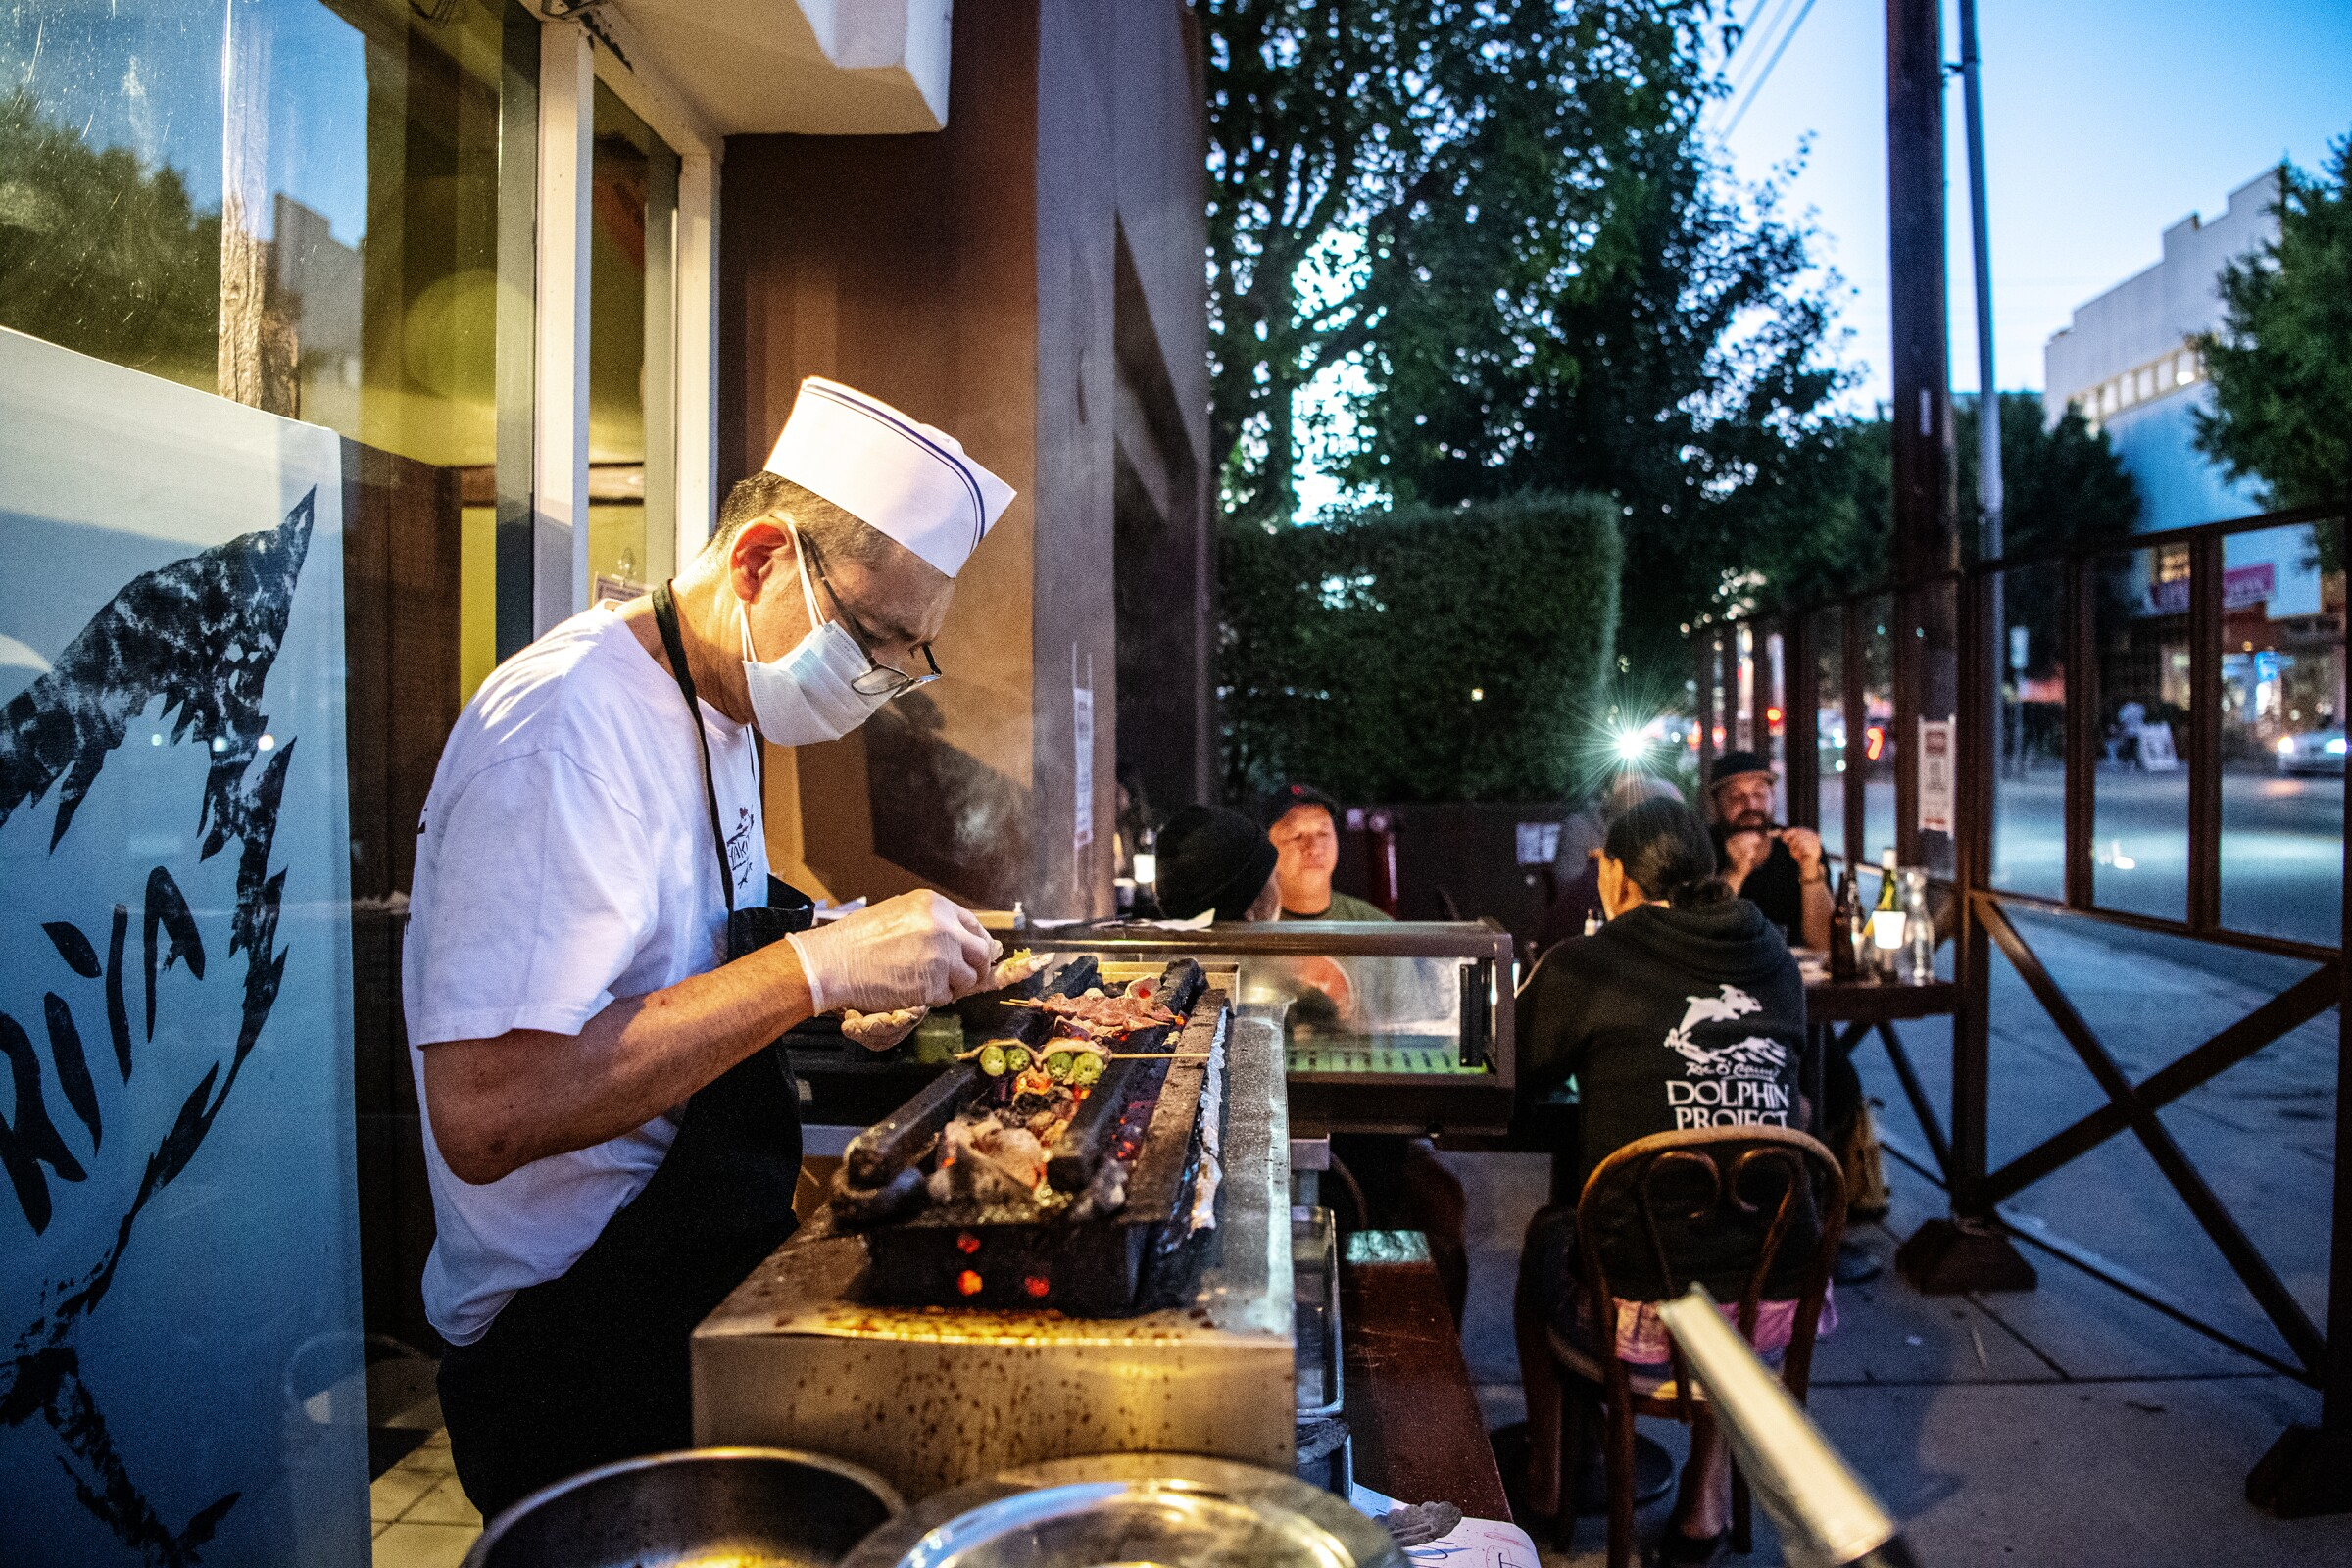 The outdoor dining scene at Yakitoriya in Los Angeles.